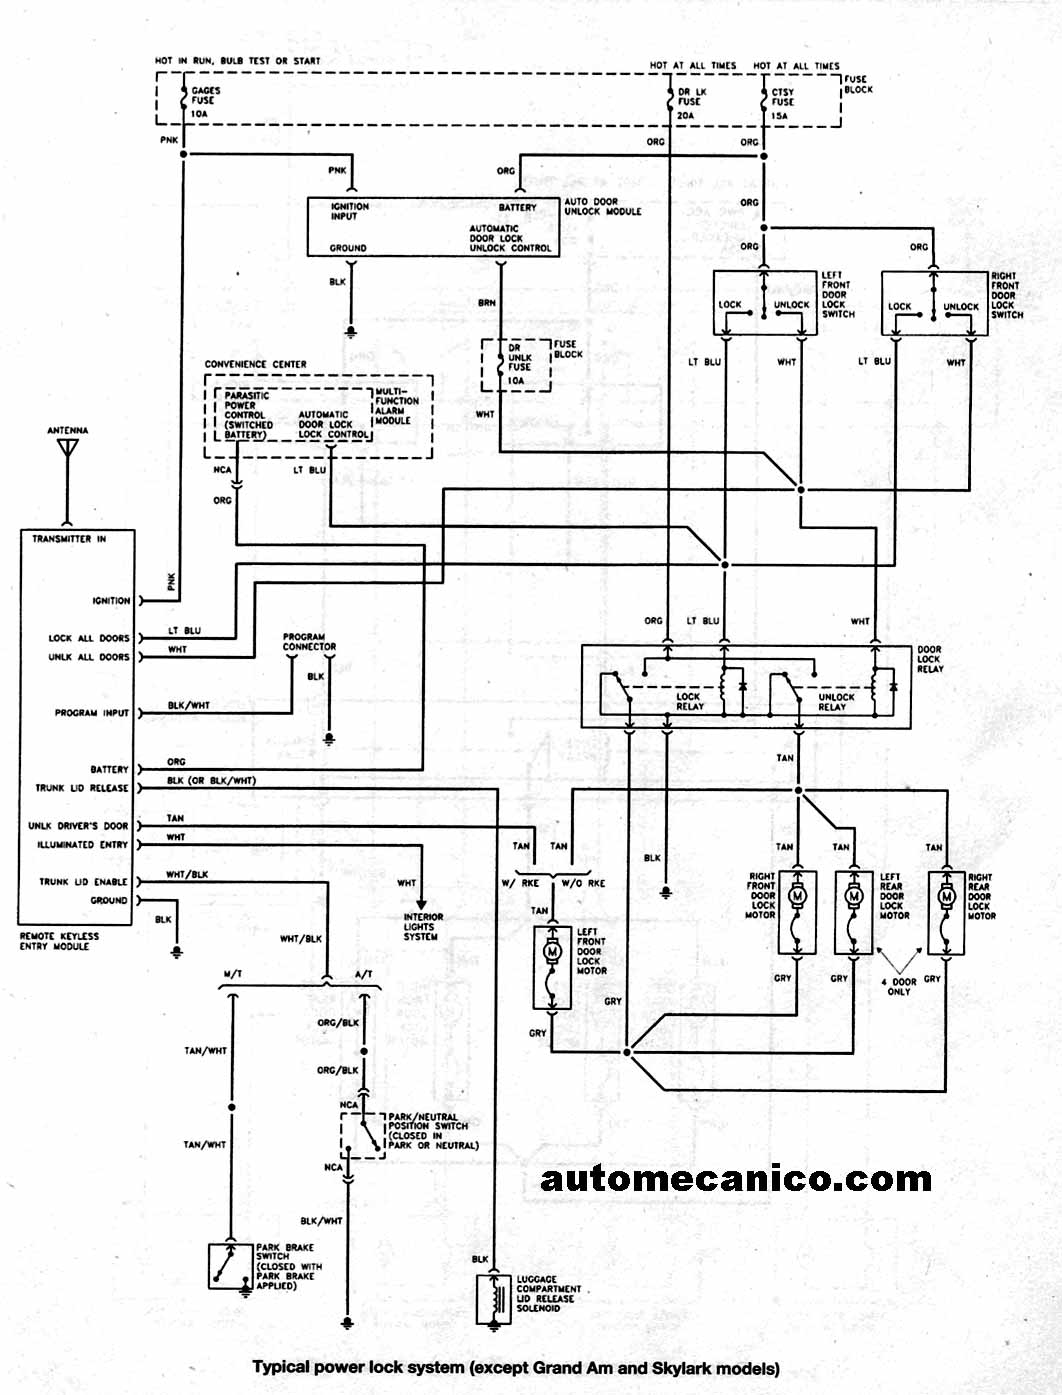 Diagramasgm on 2000 buick regal engine diagram